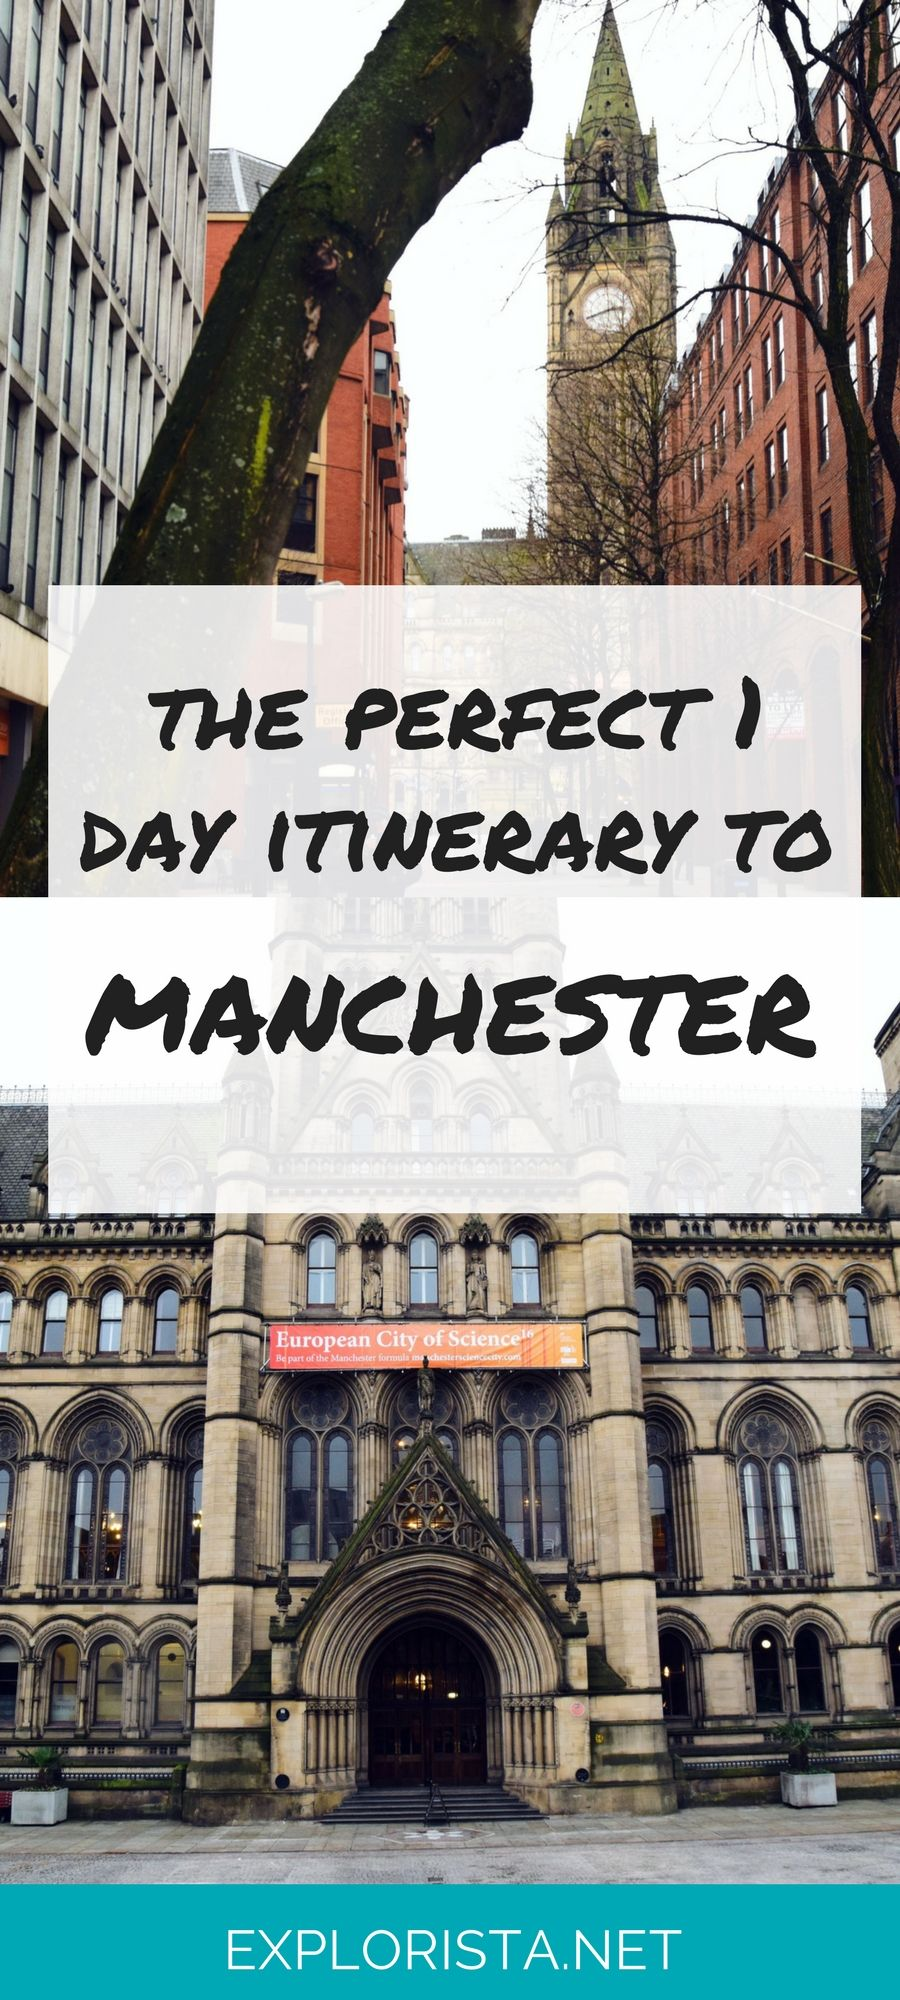 My First Day Trip Took Me To Manchester A Surprisingly Small City Known For It S Fun Pubs And Fri Manchester Travel England Travel Travel Destinations England